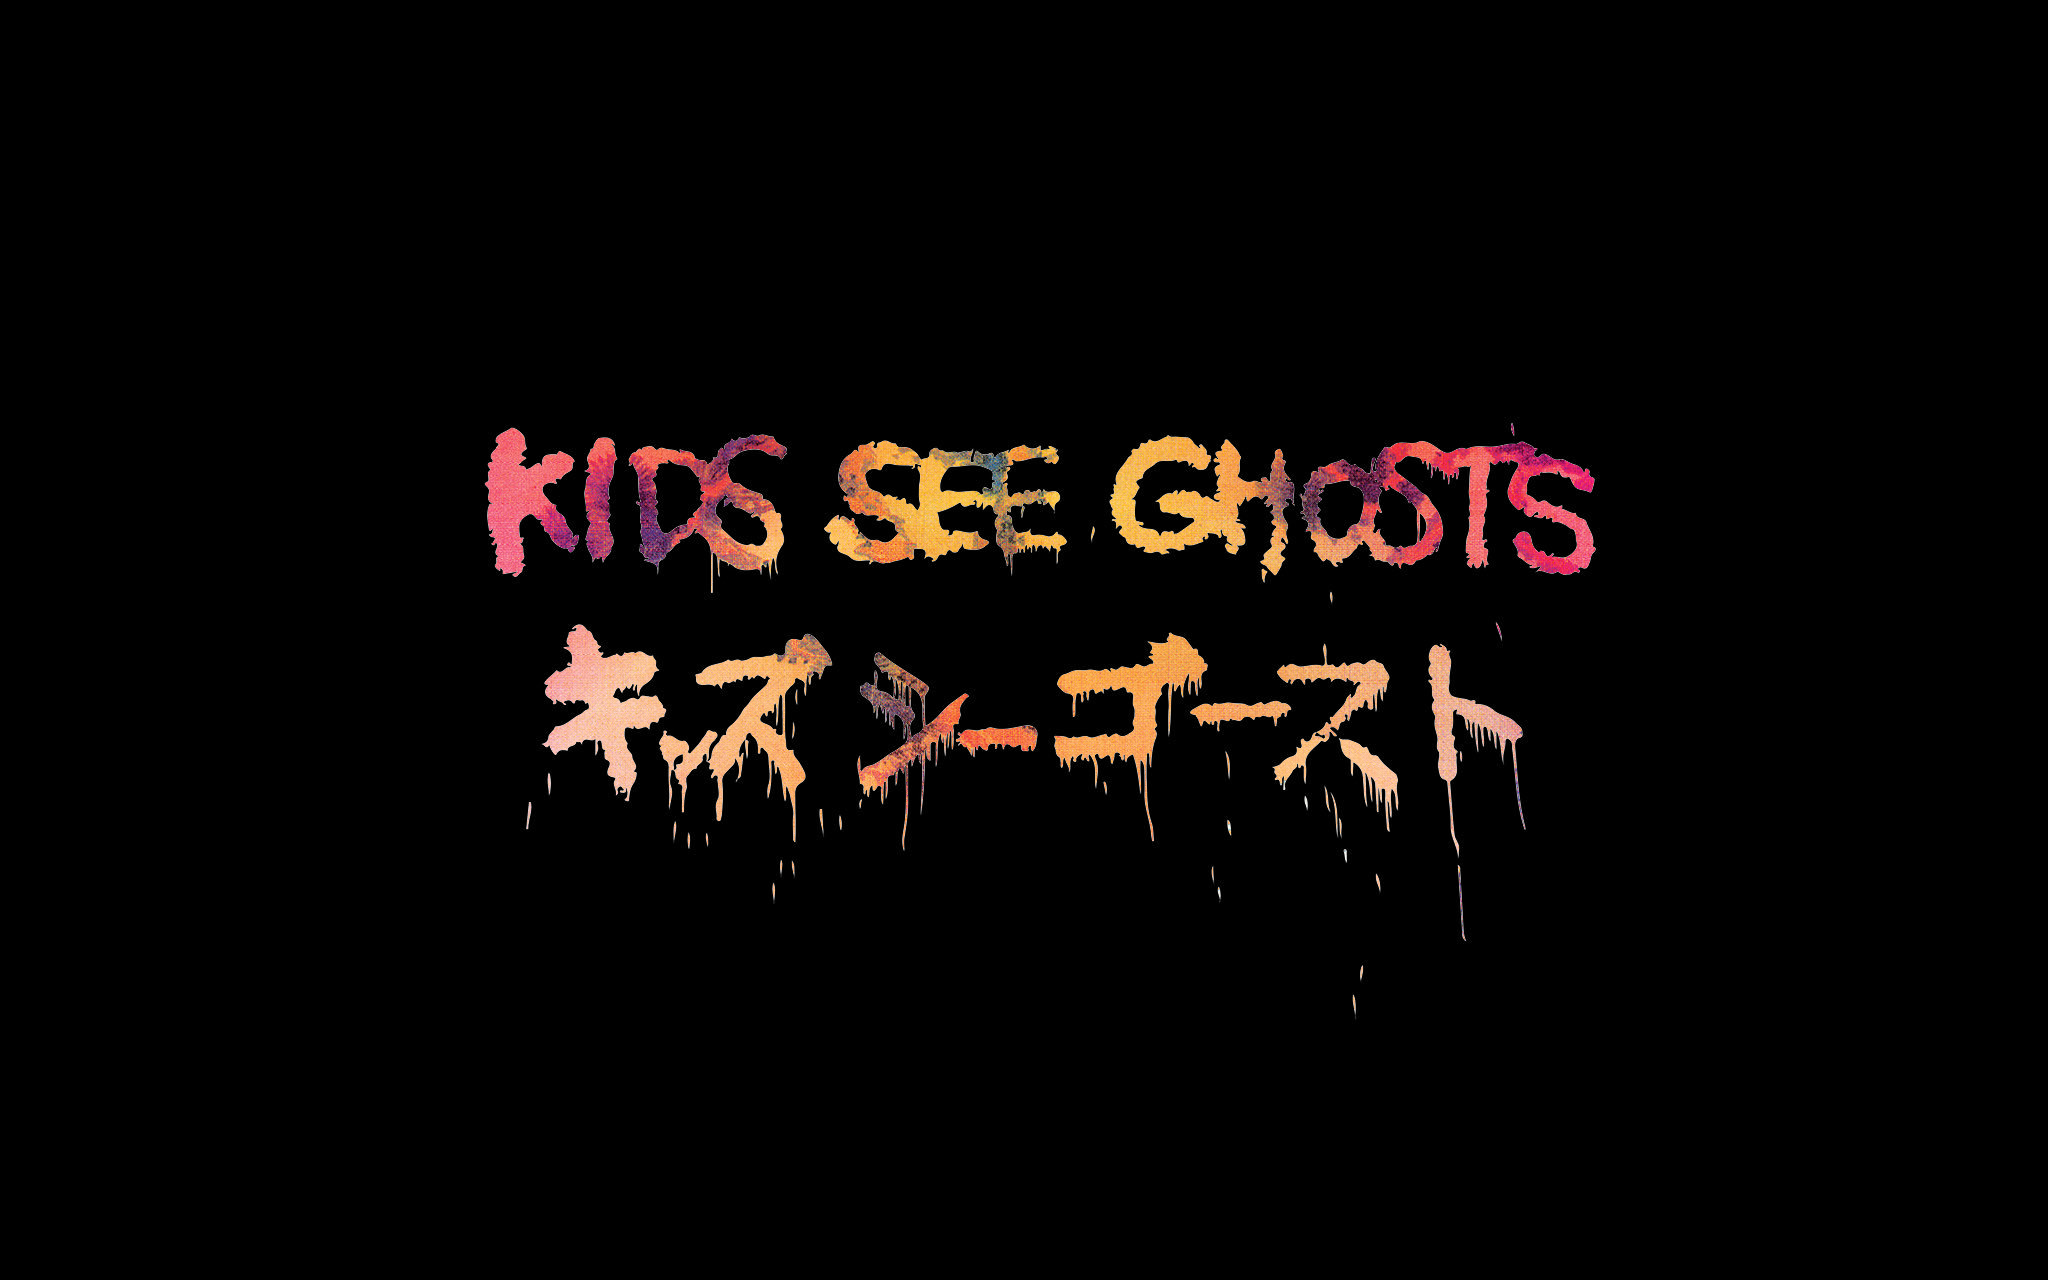 Kids See Ghosts Desktop Wallpaper 1920x1080 Need Trendy Iphone7 Iphone7plus Case Check Out H Aesthetic Desktop Wallpaper Desktop Wallpaper Art Rap Wallpaper